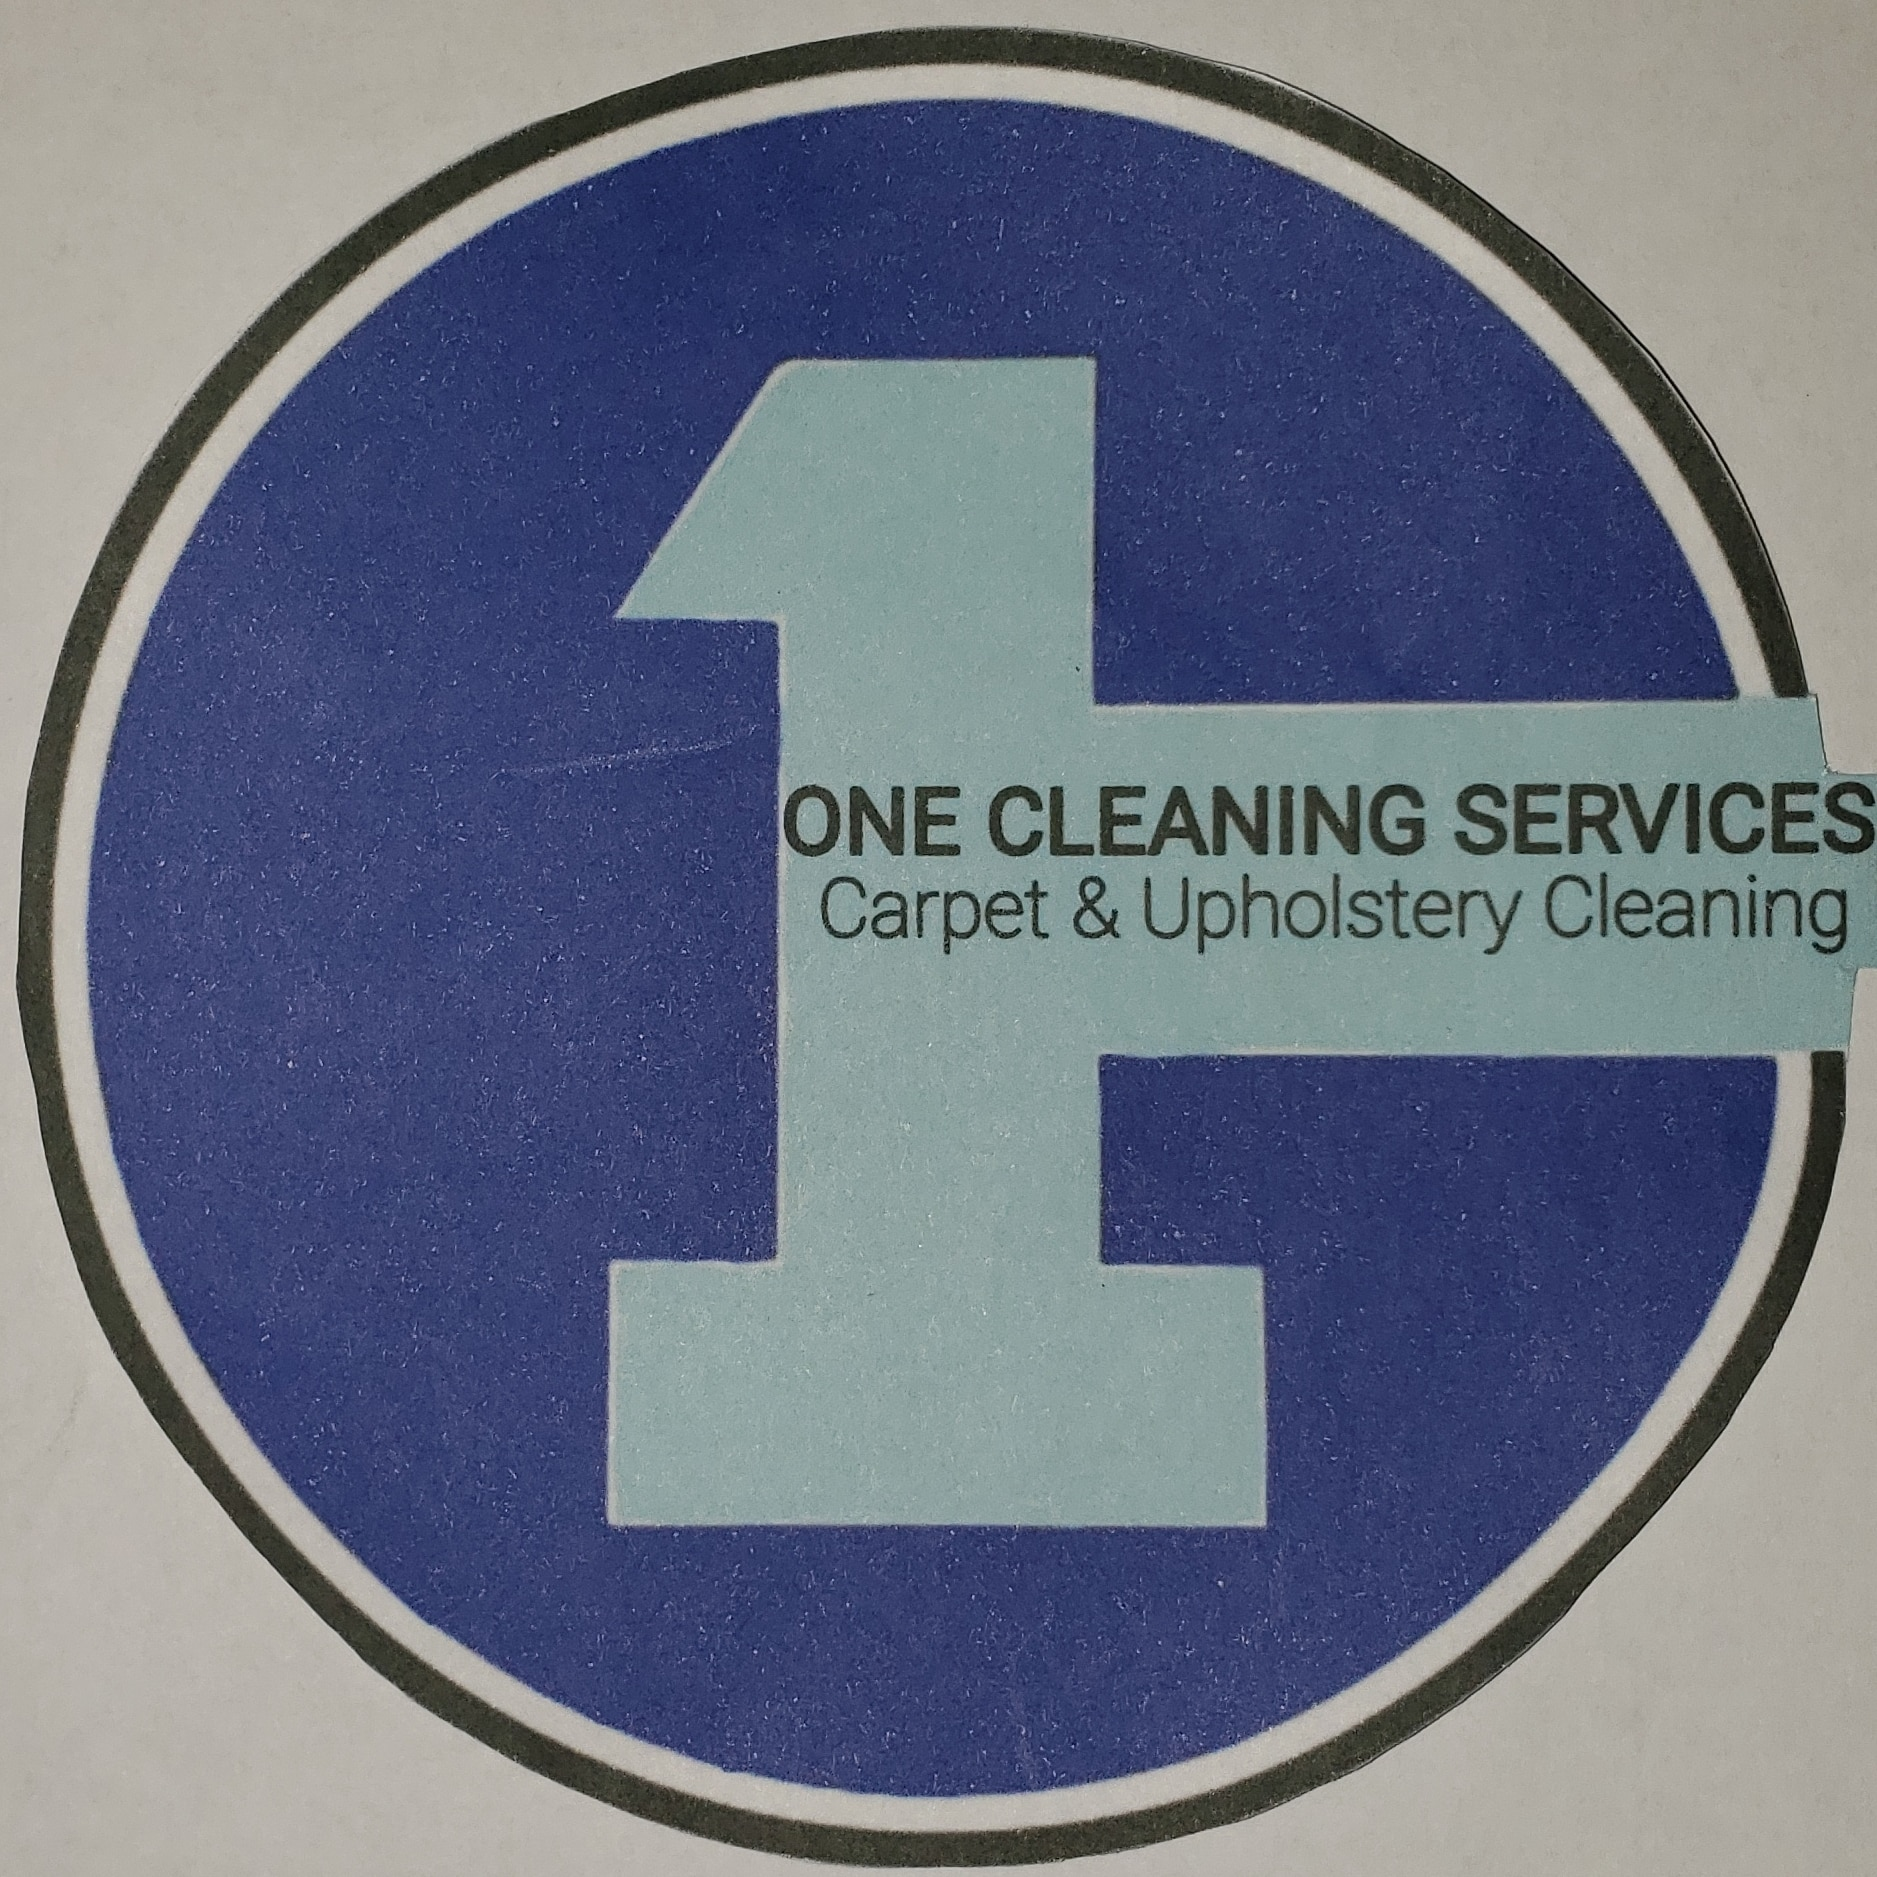 One Cleaning Services logo